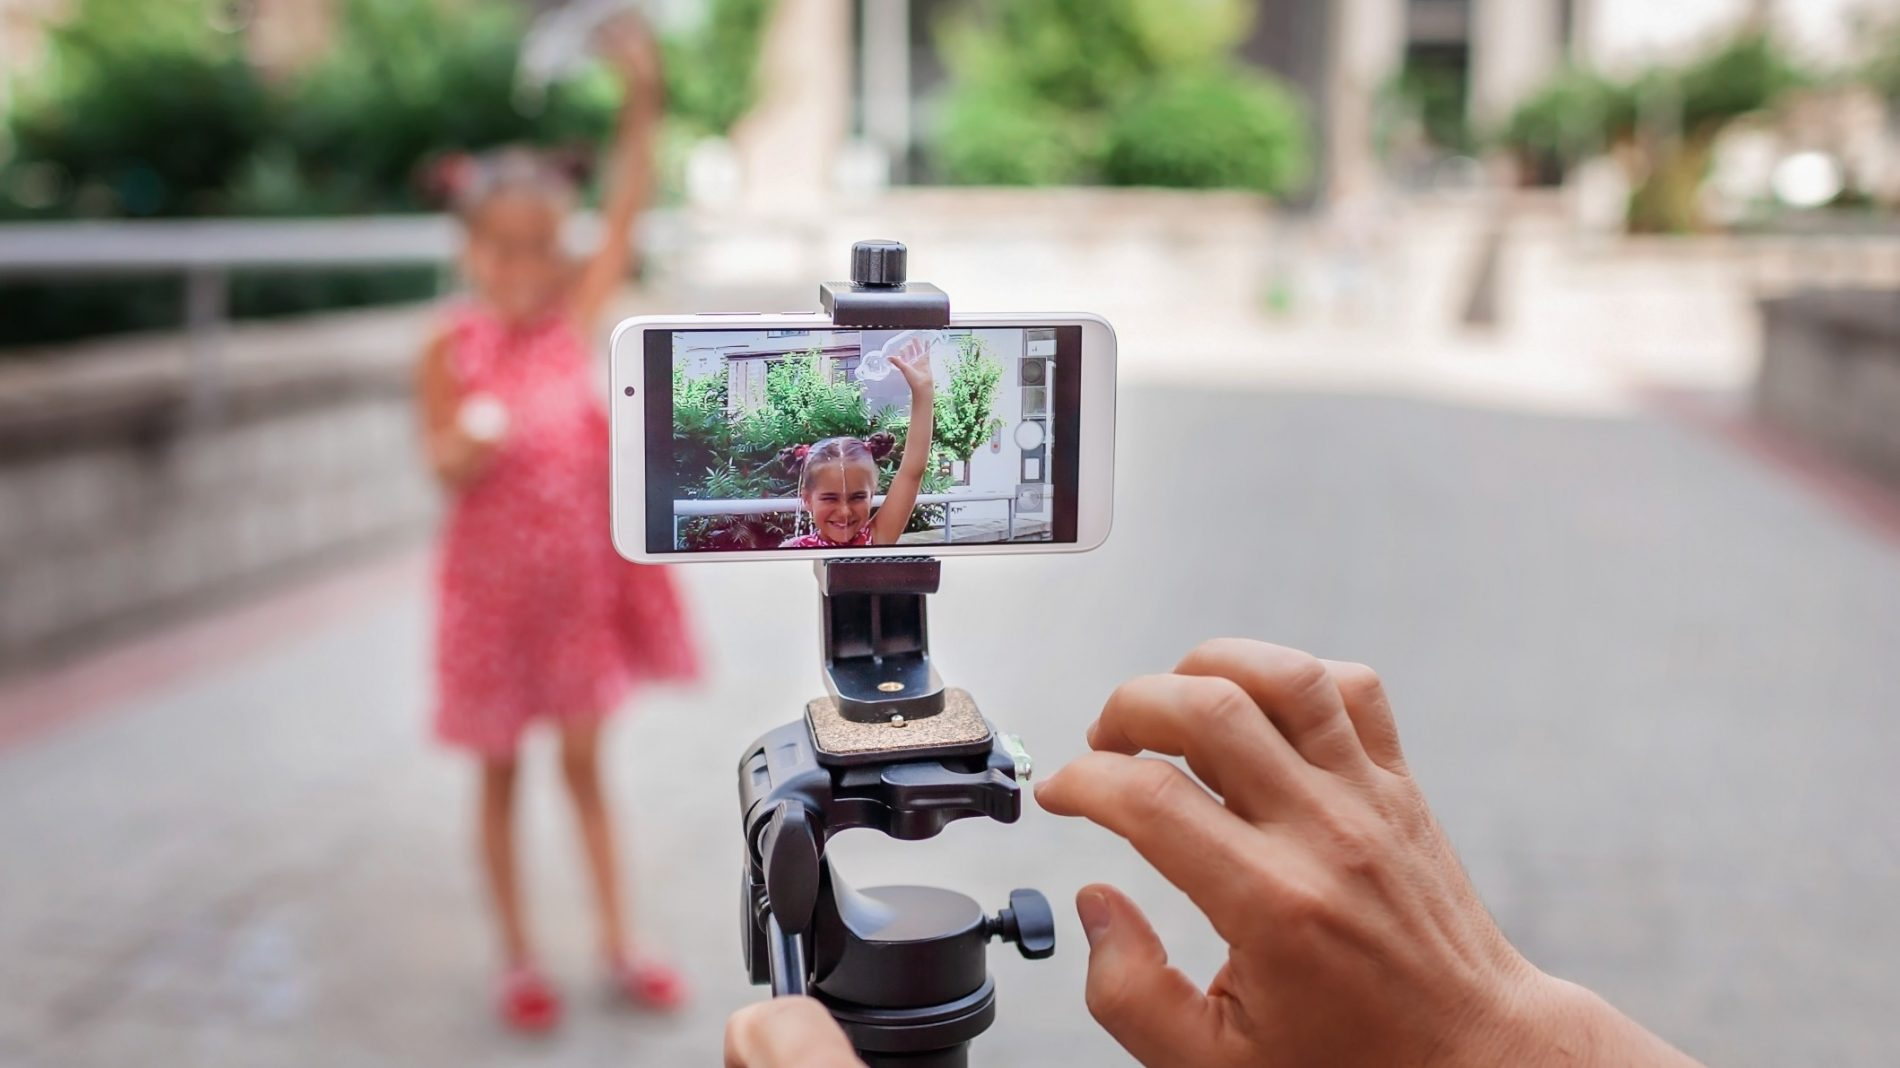 A person recording footage on their phone of a young girl